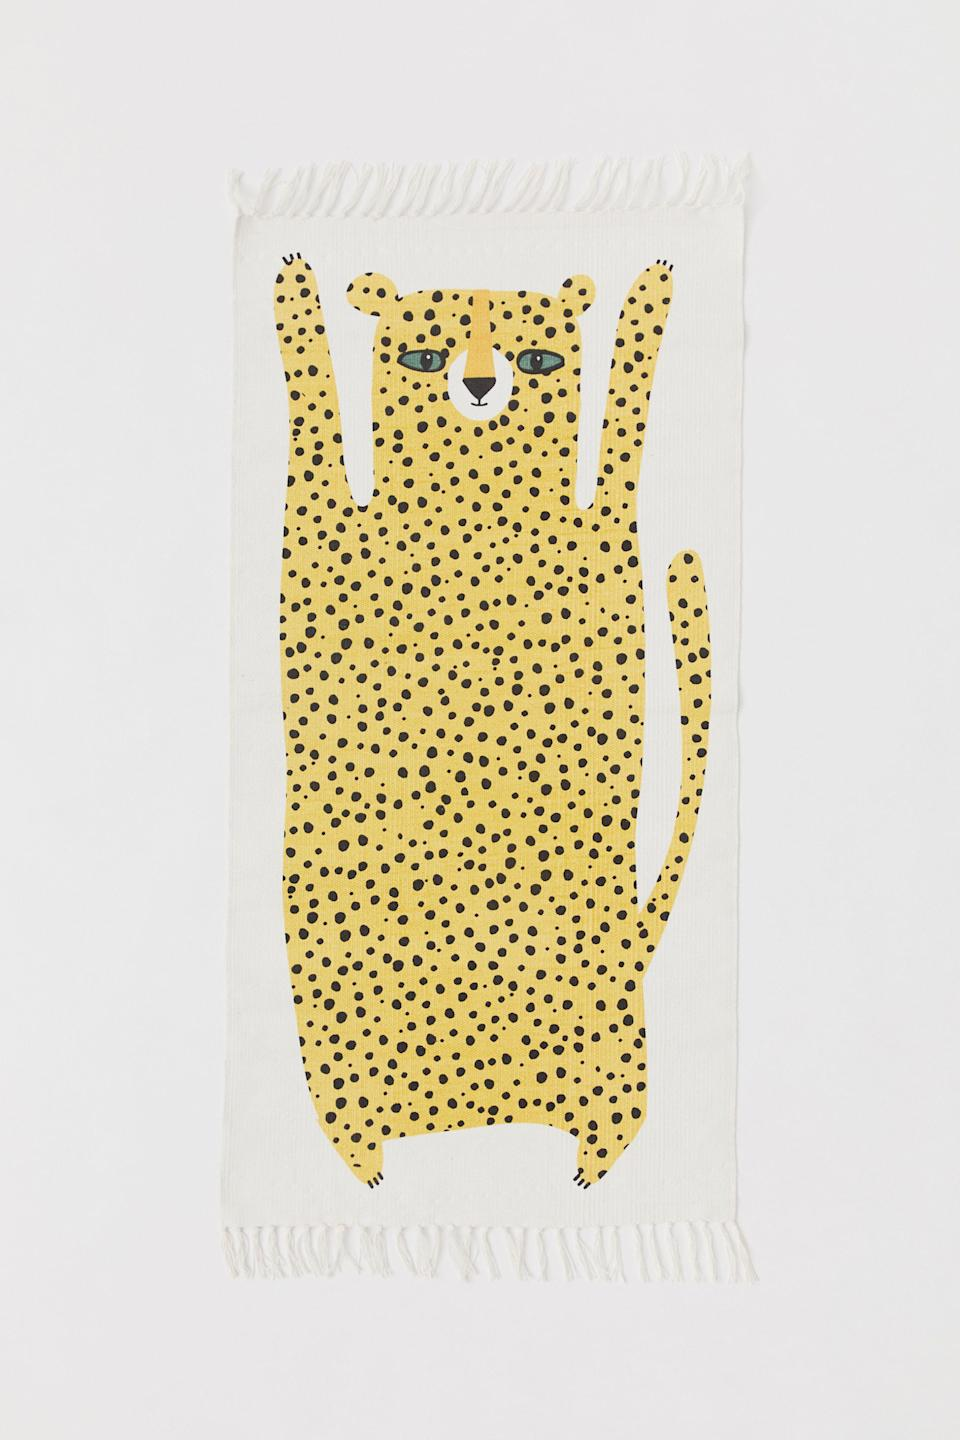 "<p>Add an easy touch of whimsy to your hallway with this leopard-printed, cotton runner.</p><br><br><strong>H&M</strong> Cotton Rug with Printed Motif, $29.99, available at <a href=""https://www2.hm.com/en_us/productpage.0591679004.html"" rel=""nofollow noopener"" target=""_blank"" data-ylk=""slk:H&M"" class=""link rapid-noclick-resp"">H&M</a>"